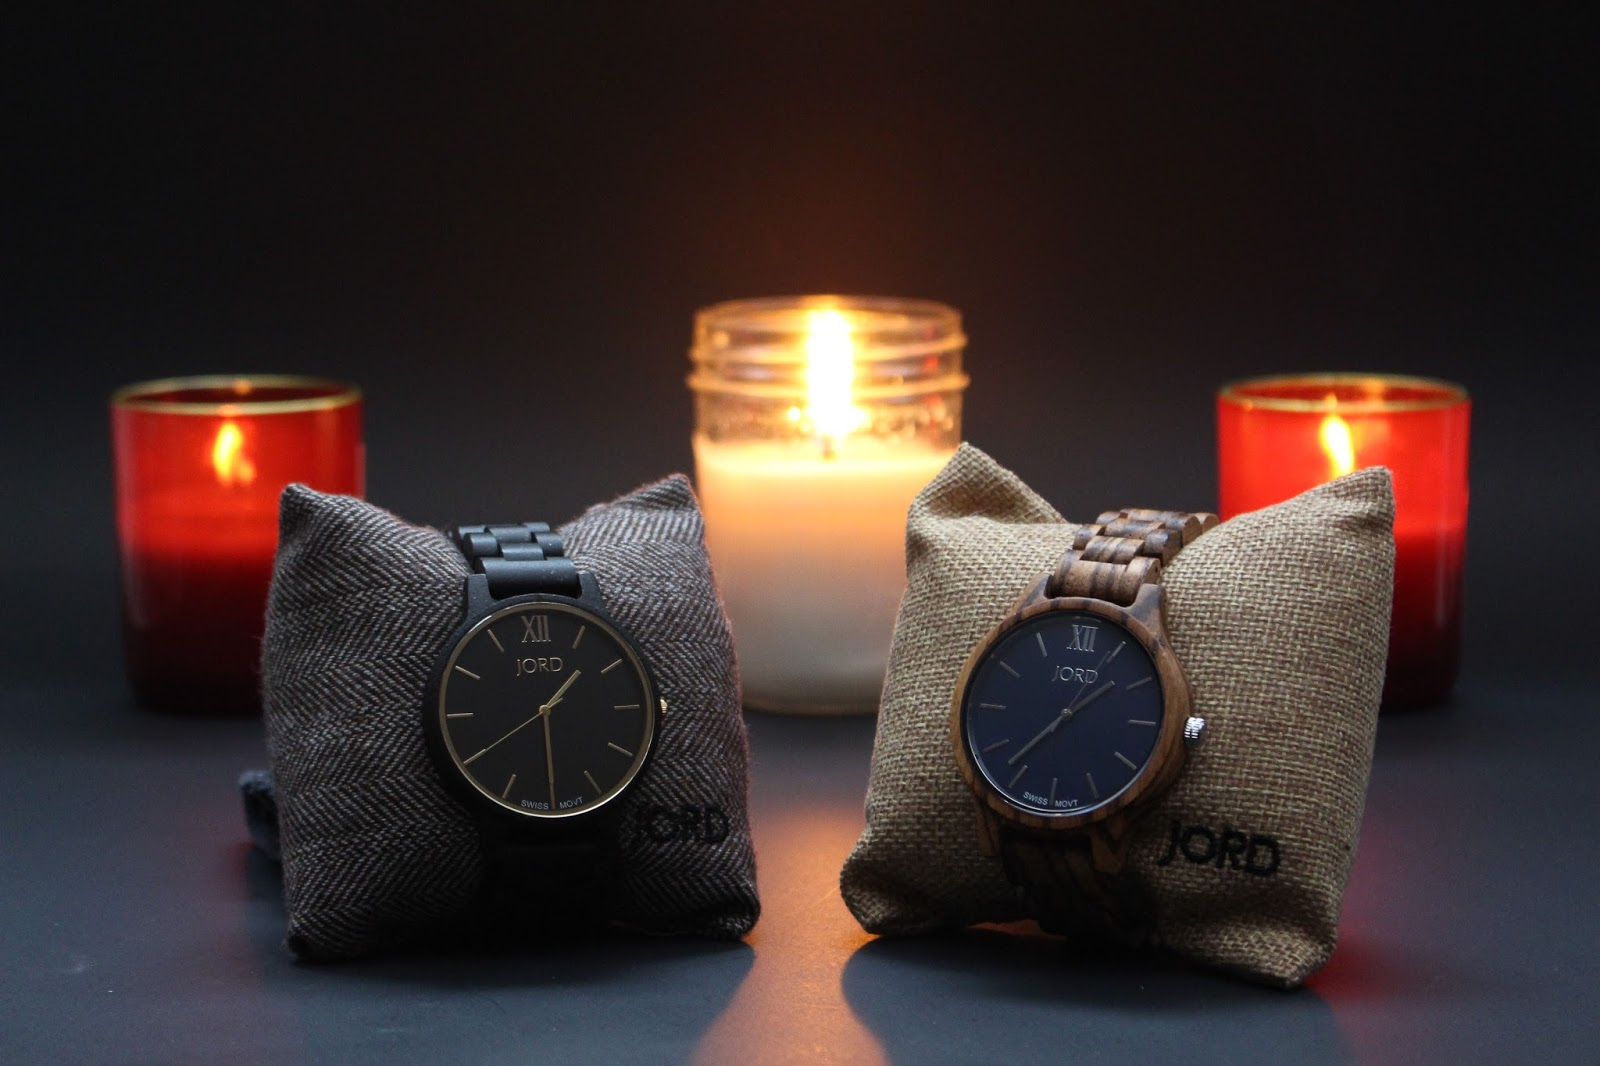 jord, wood watch, valentine's day gifts, men's watch, women's watch